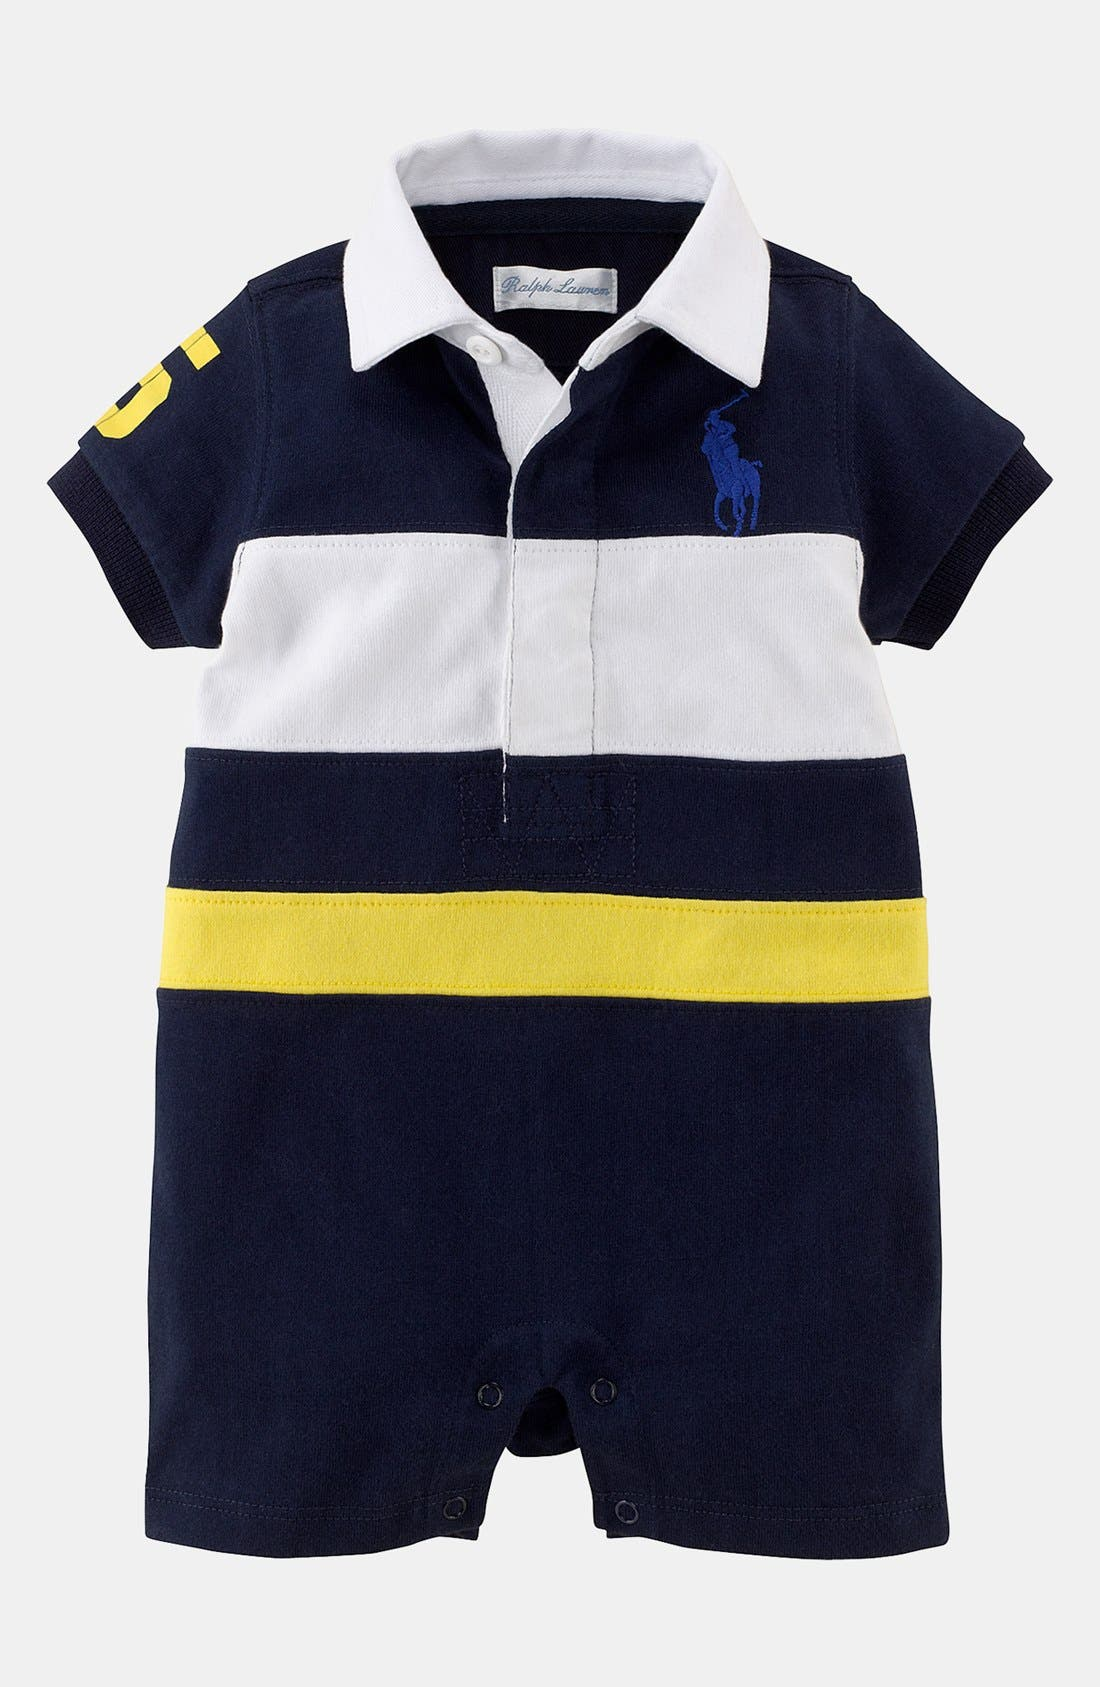 Alternate Image 1 Selected - Ralph Lauren Rugby Romper (Baby Boys)